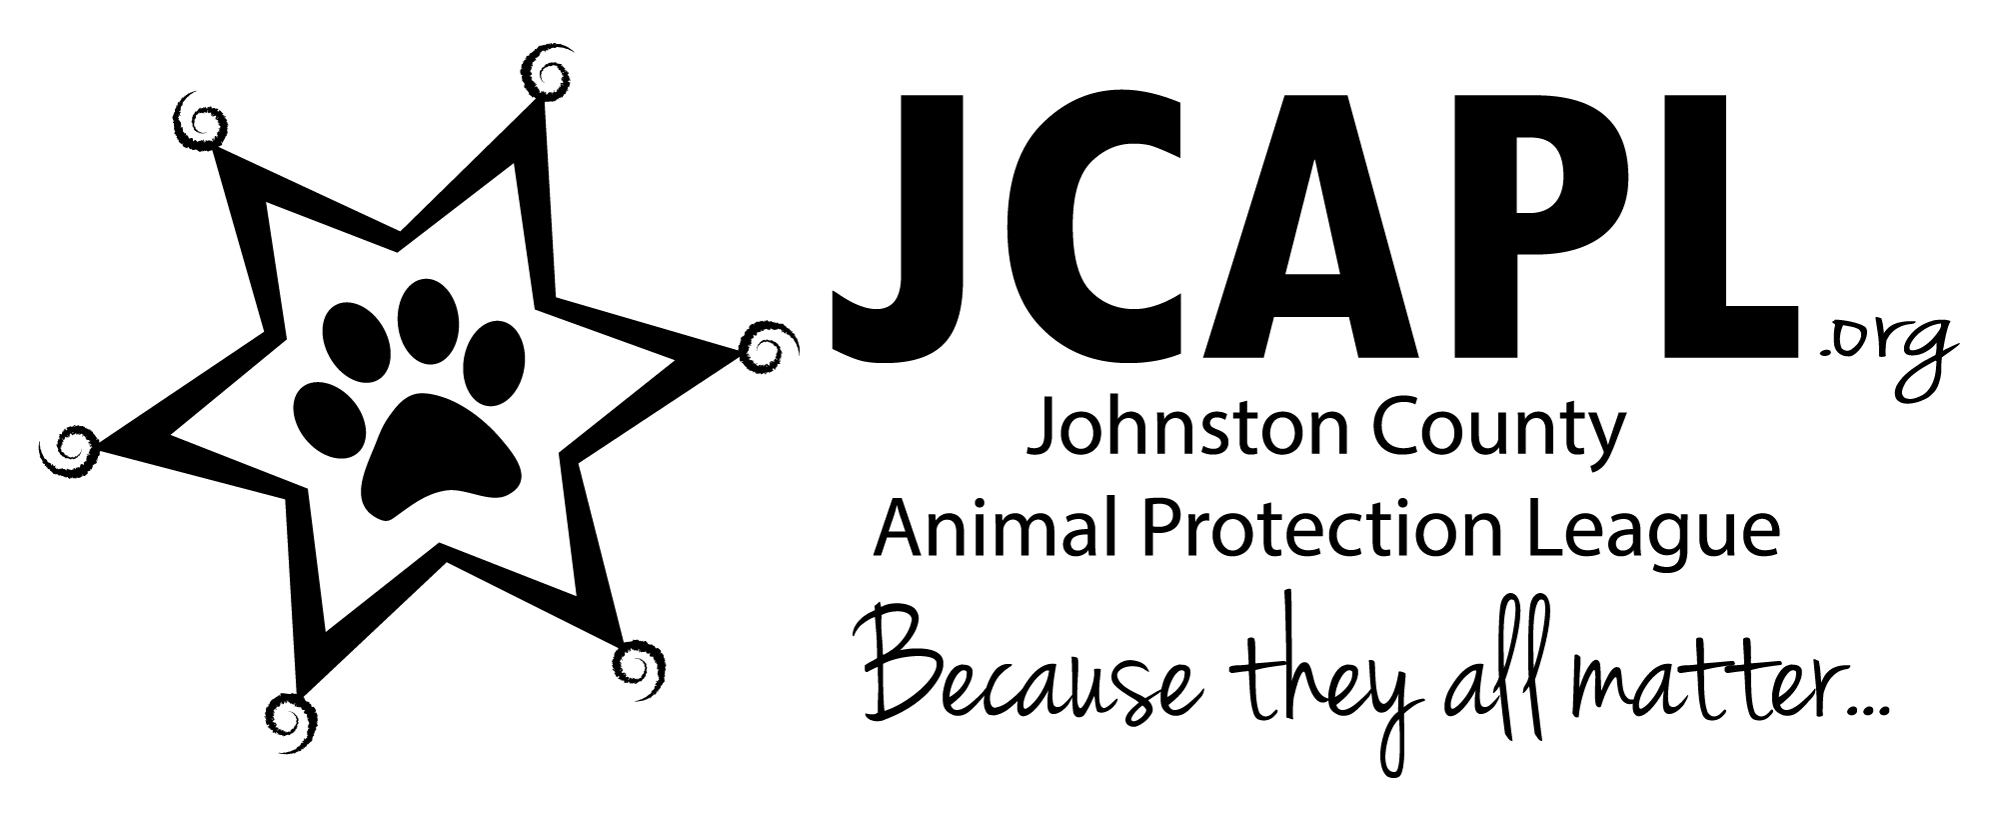 Sponsor Johnston County Animal Protection League